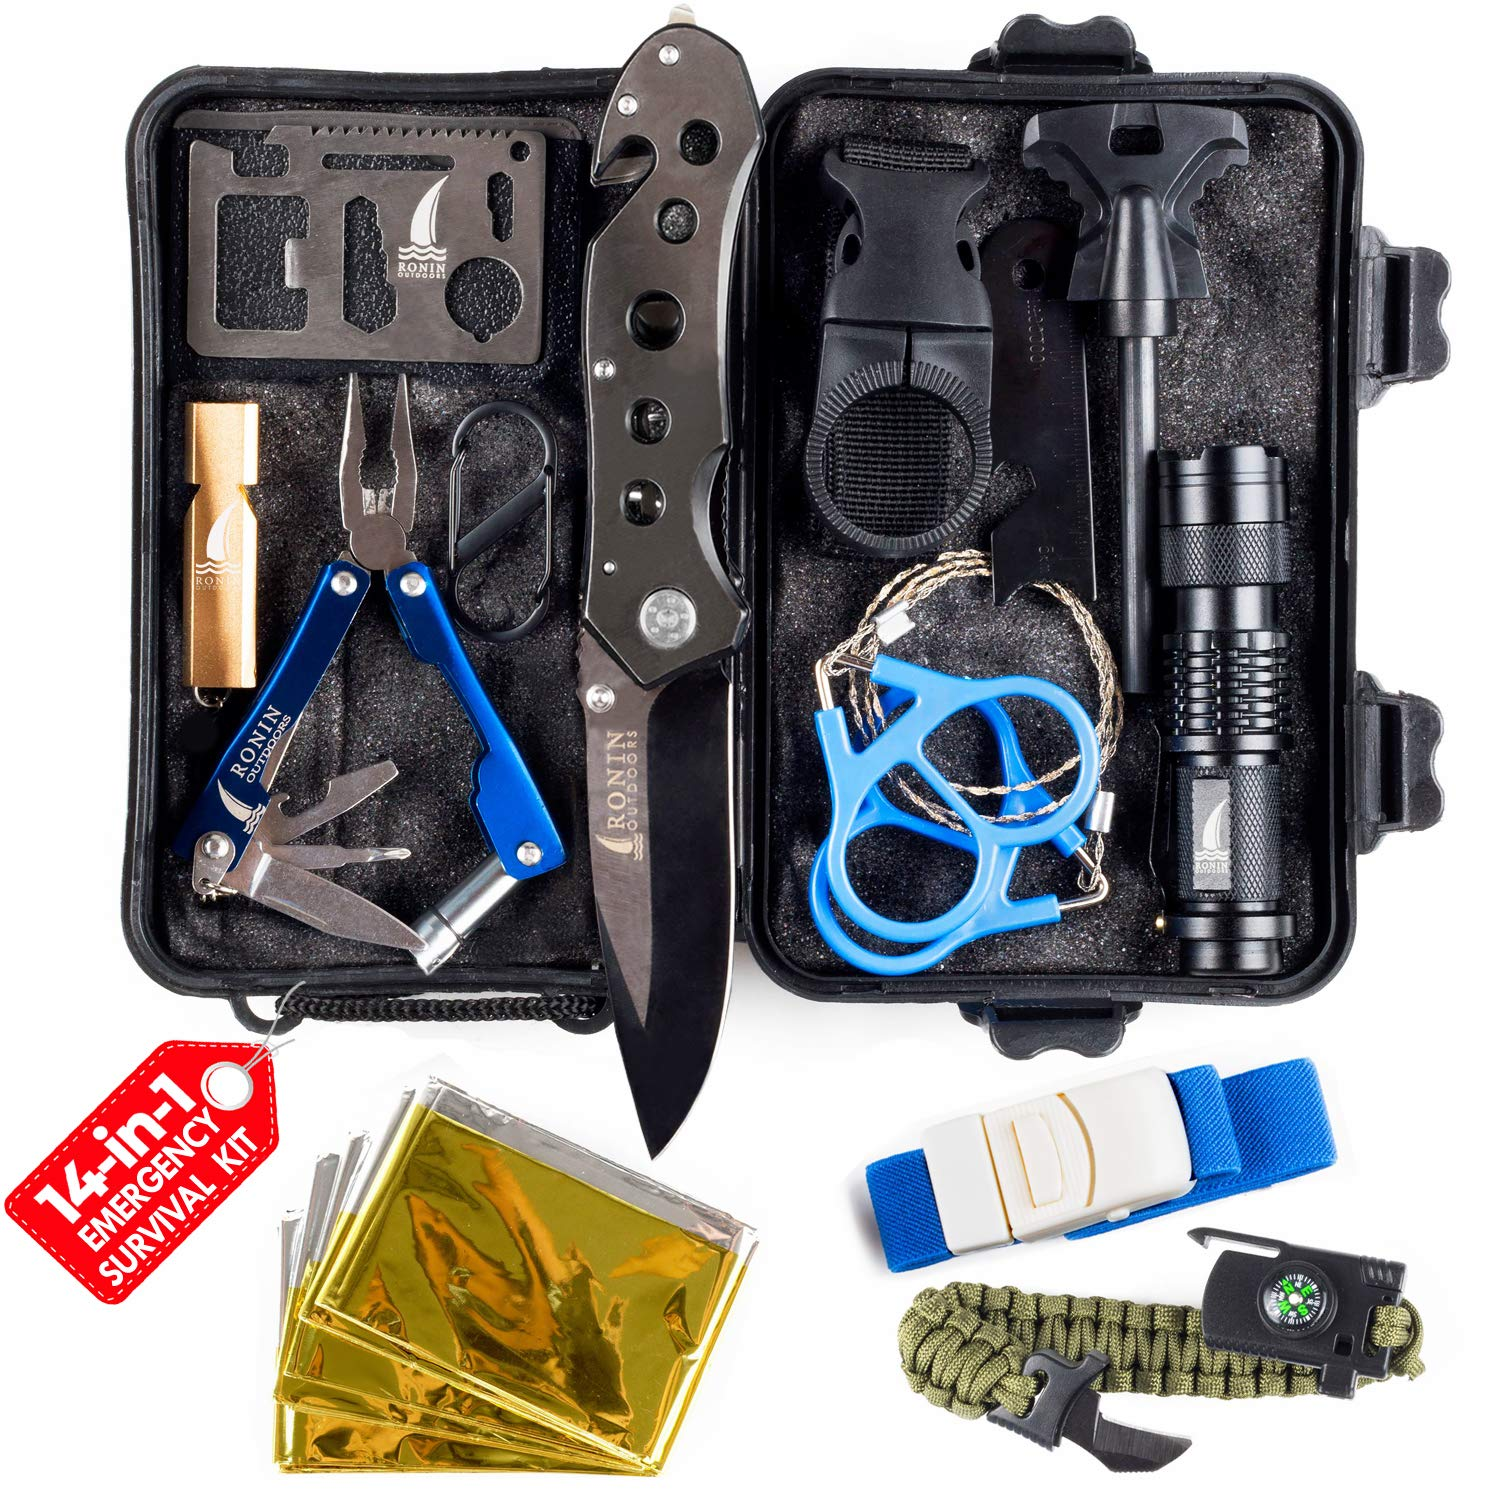 Camping Gear Tactical Survival Kit 14 in 1 | Hiking Backpack Outdoors| Car Emergency EDC Tools - SOS Disaster Preparedness Great Fishing Hunting Gifts for Men & Women by Ronin Outdoors